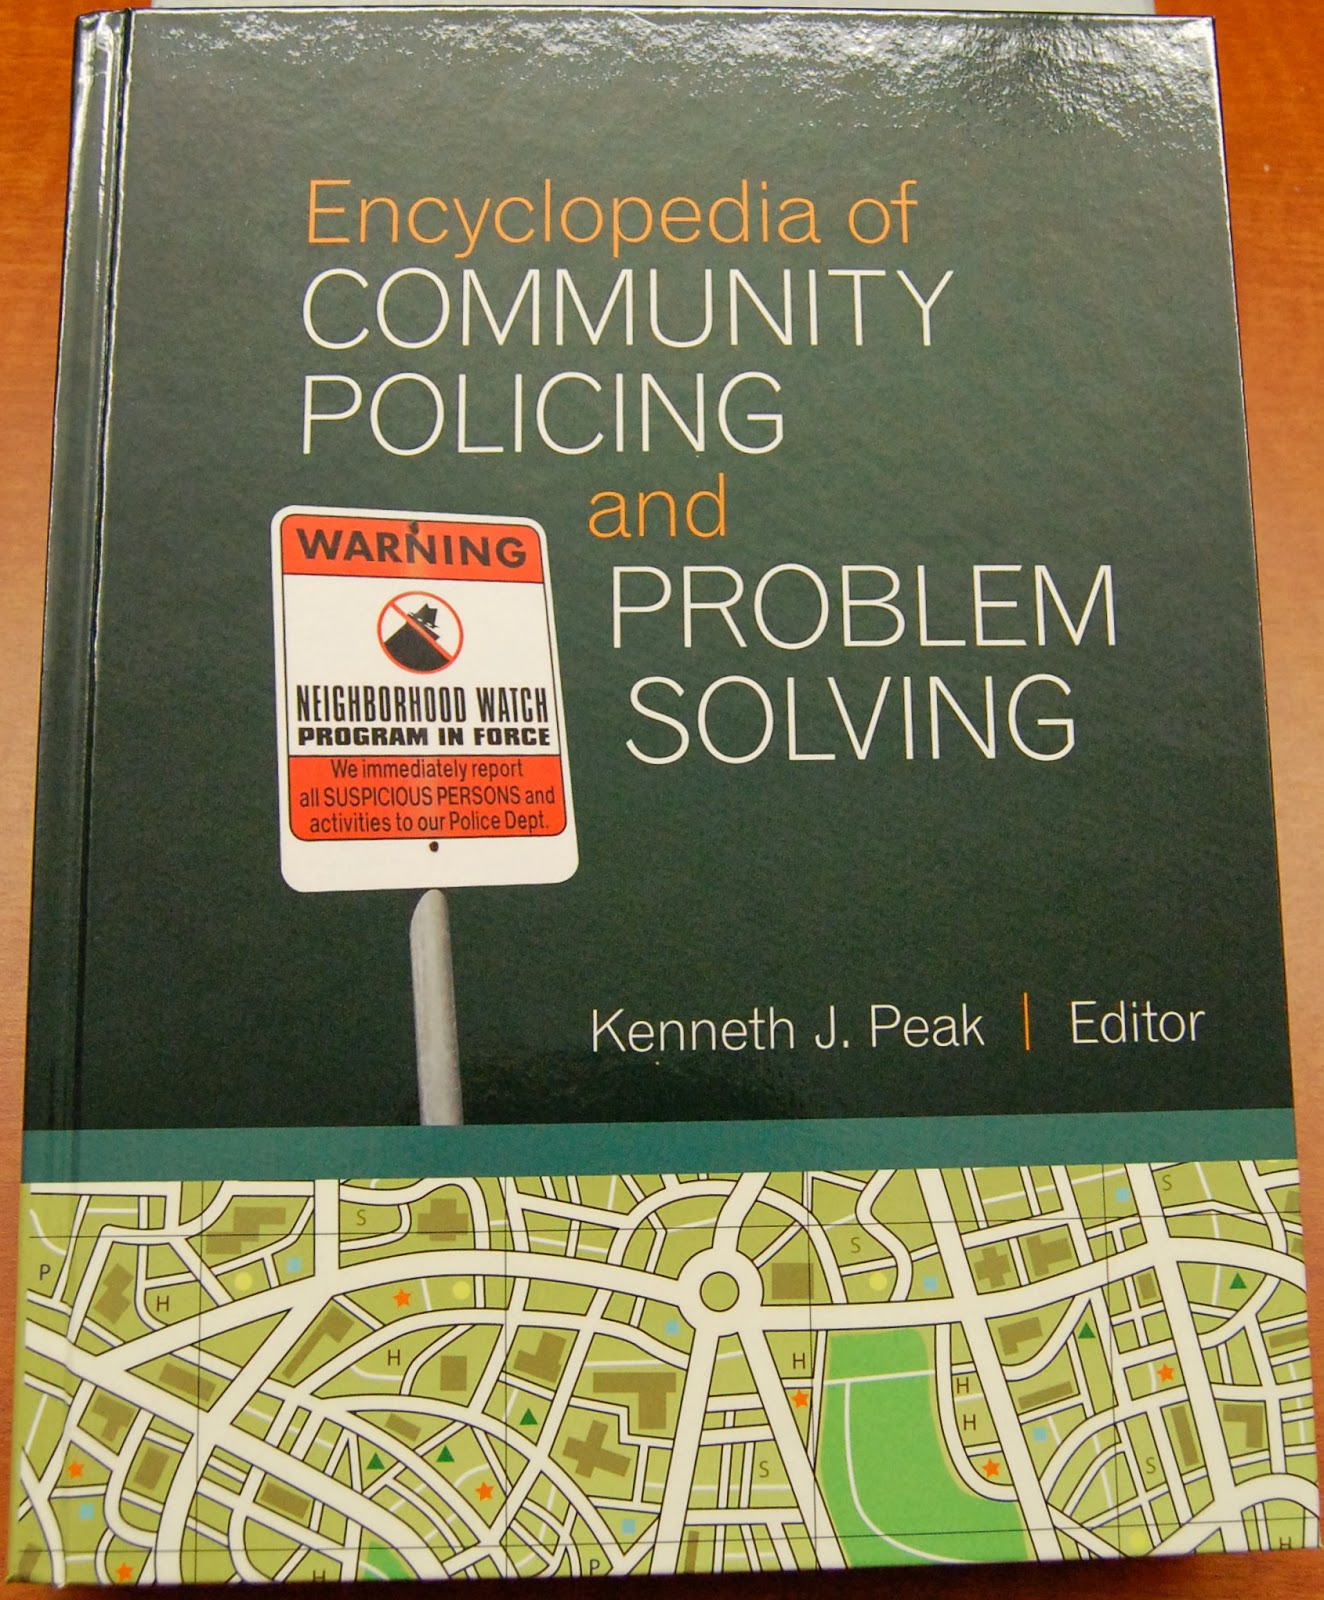 community and problem solving policing Message from the chief i practice and hold my staff accountable to a 'community policing' philosophy style of policing, where we try to anticipate trends through partnerships and strong community relations as opposed to traditional policing which is enforcement heavy.